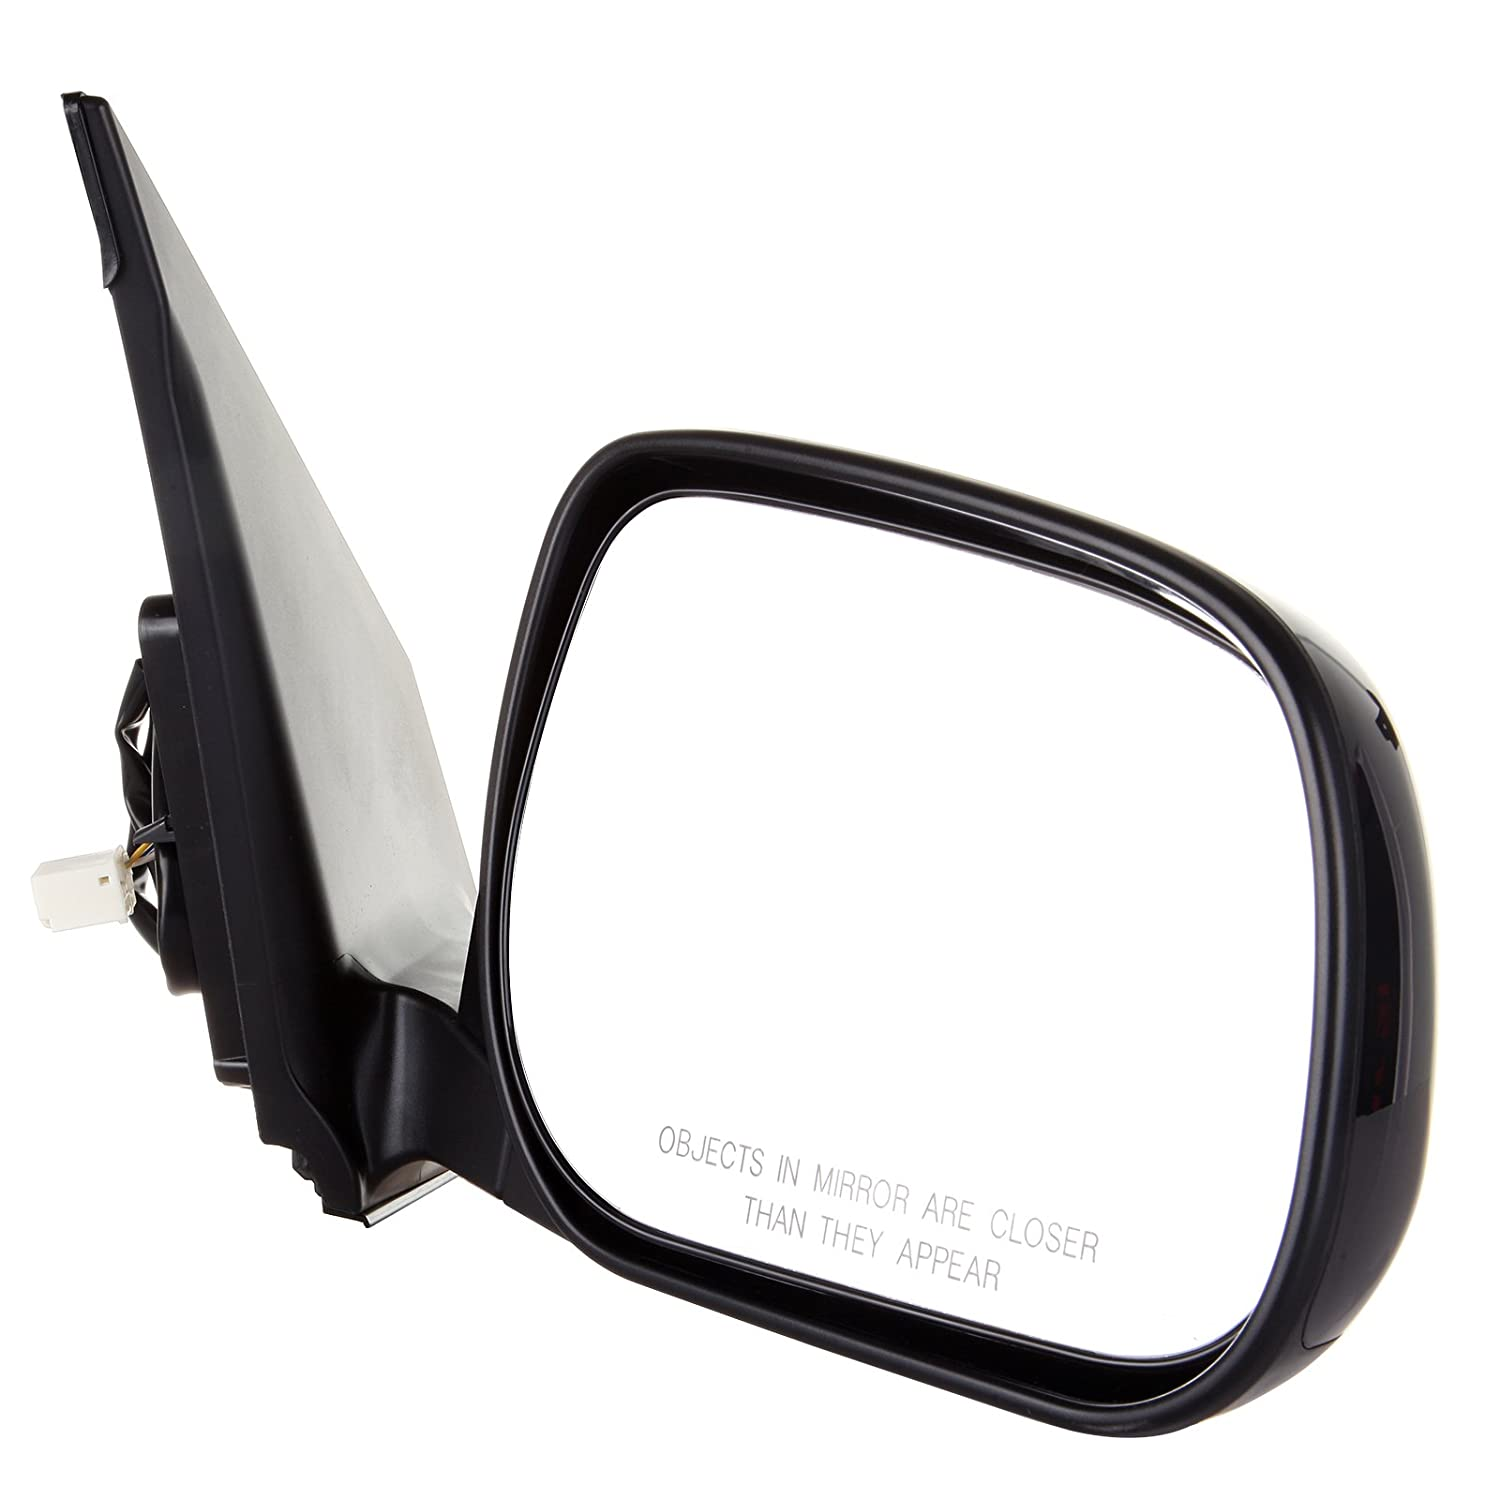 INEEDUP Towing Mirrors Rear view Mirrors Fit for 2006-2008 Toyota RAV4 Limited Sport Right Side Manual Folding Power Adjusting 87910-42870 TO1321234